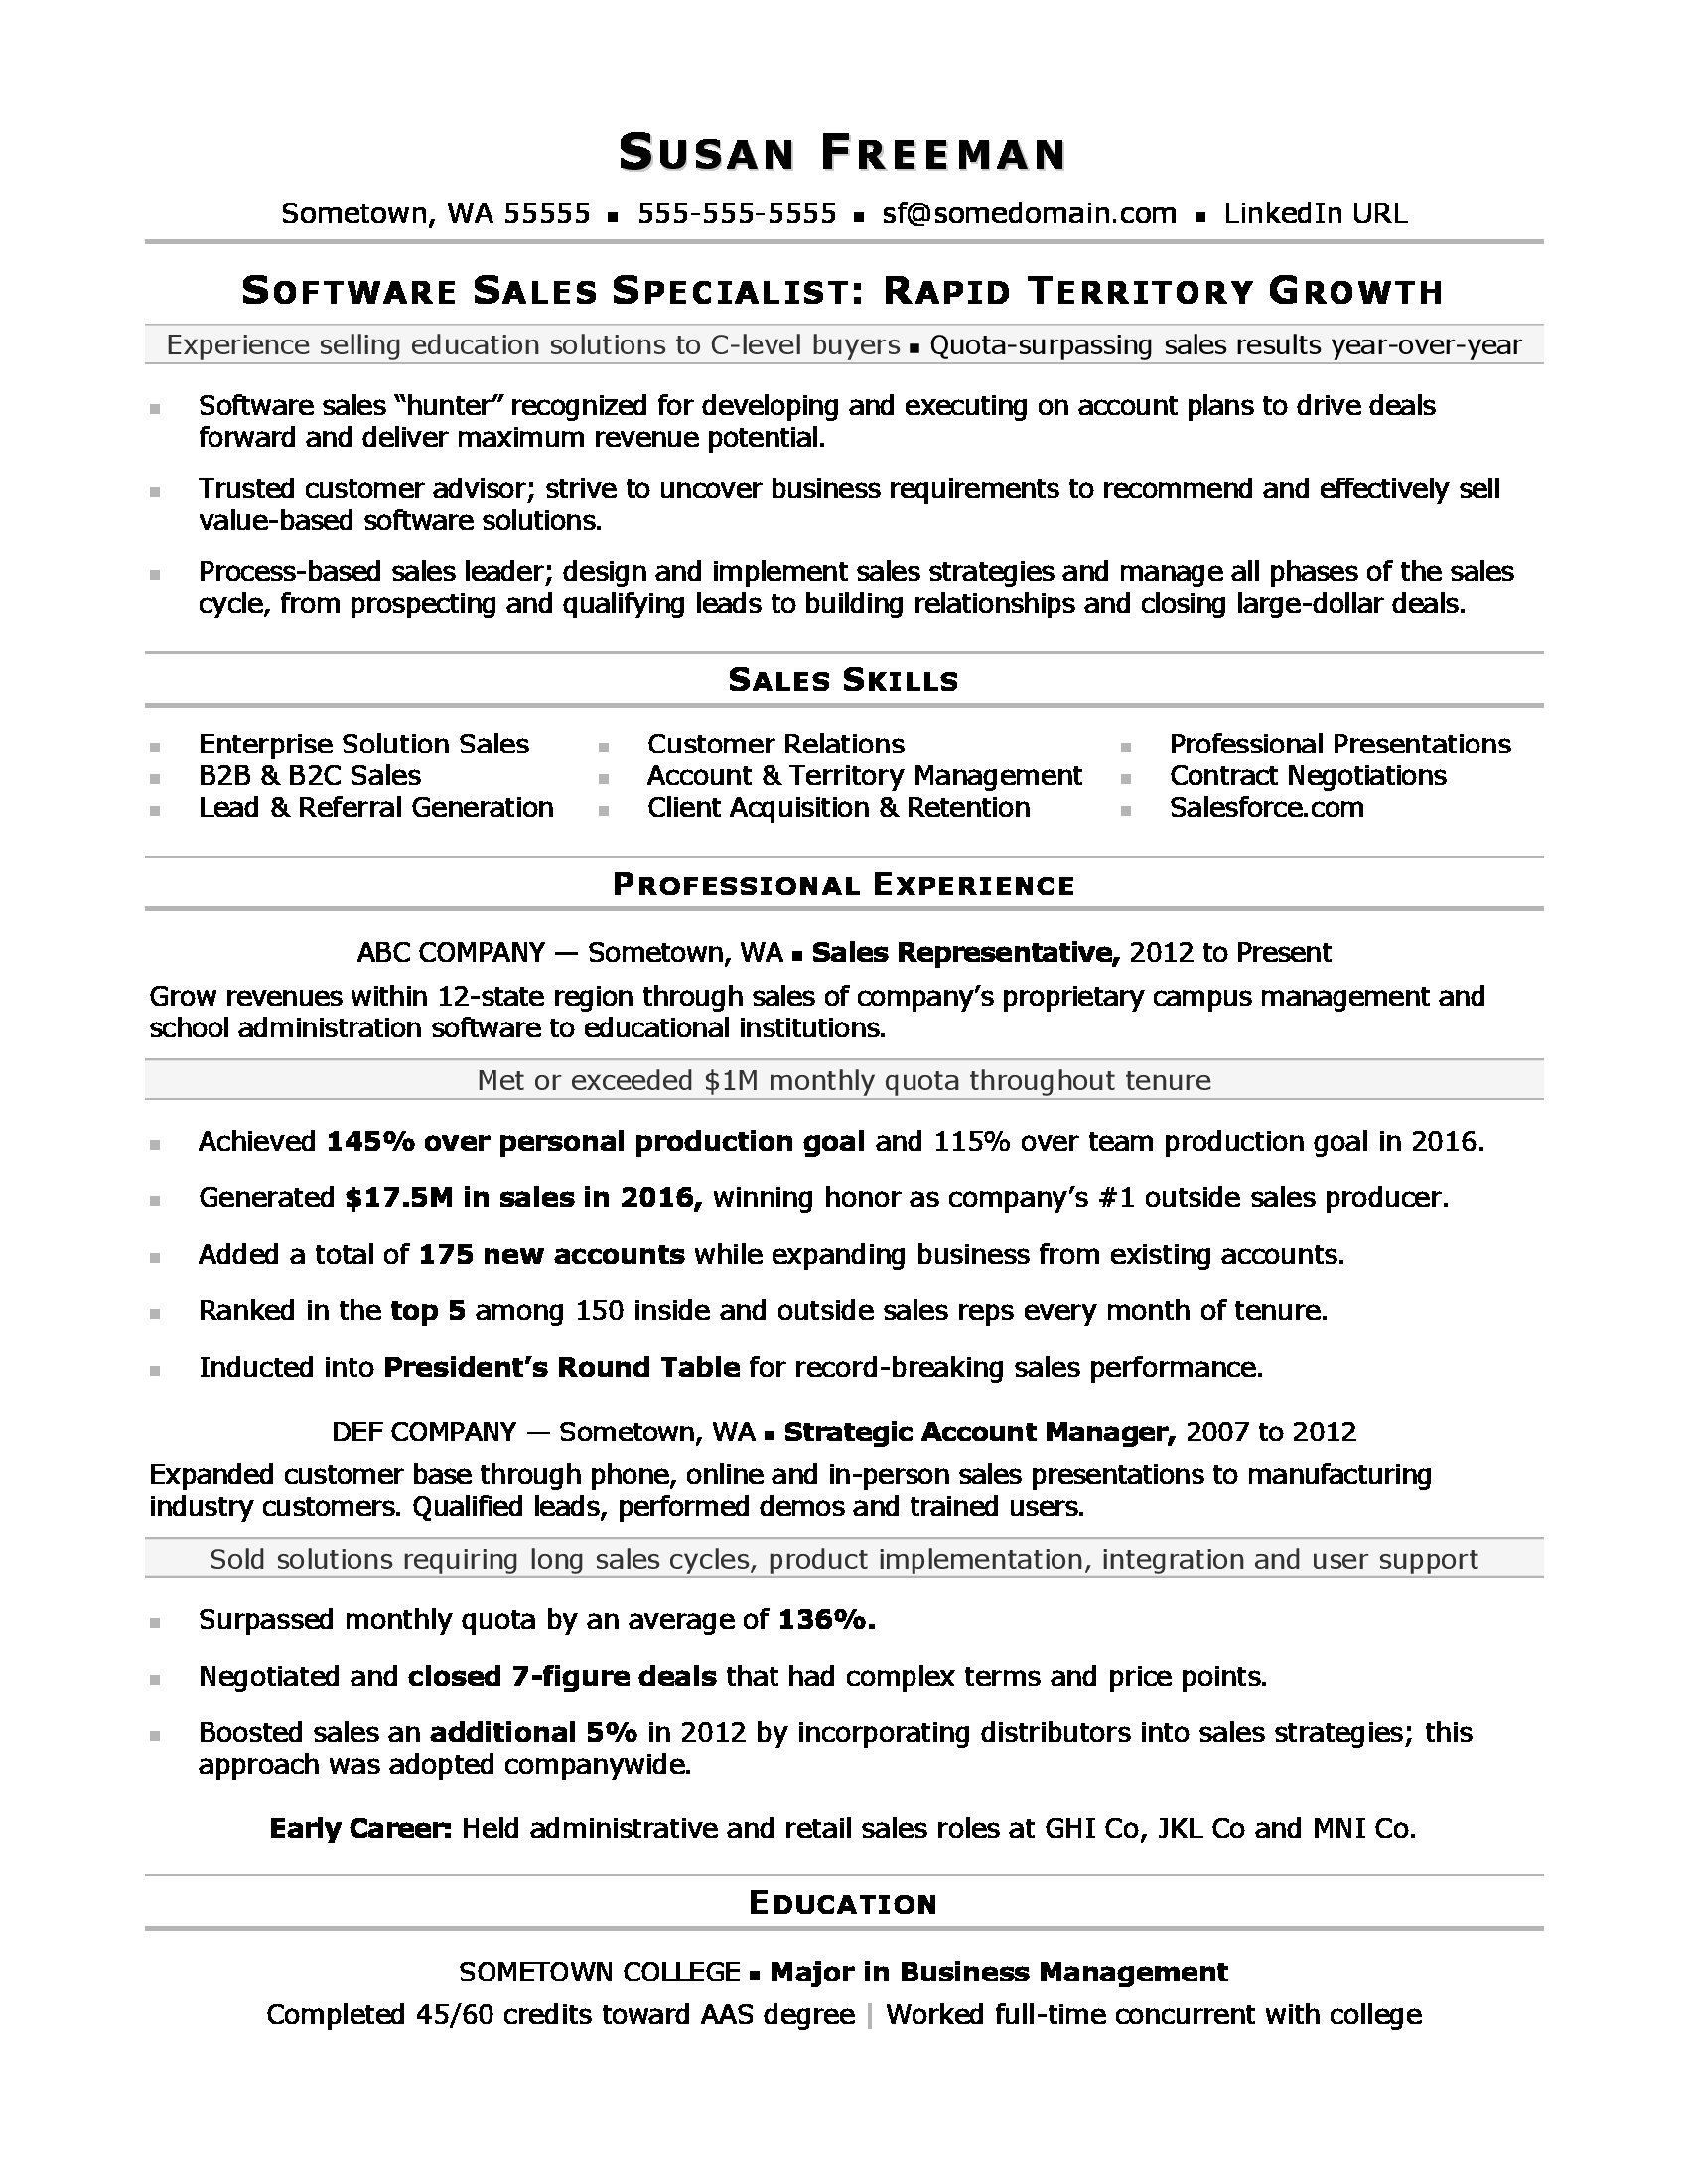 Sales Associate Resume Sample | Monster.com